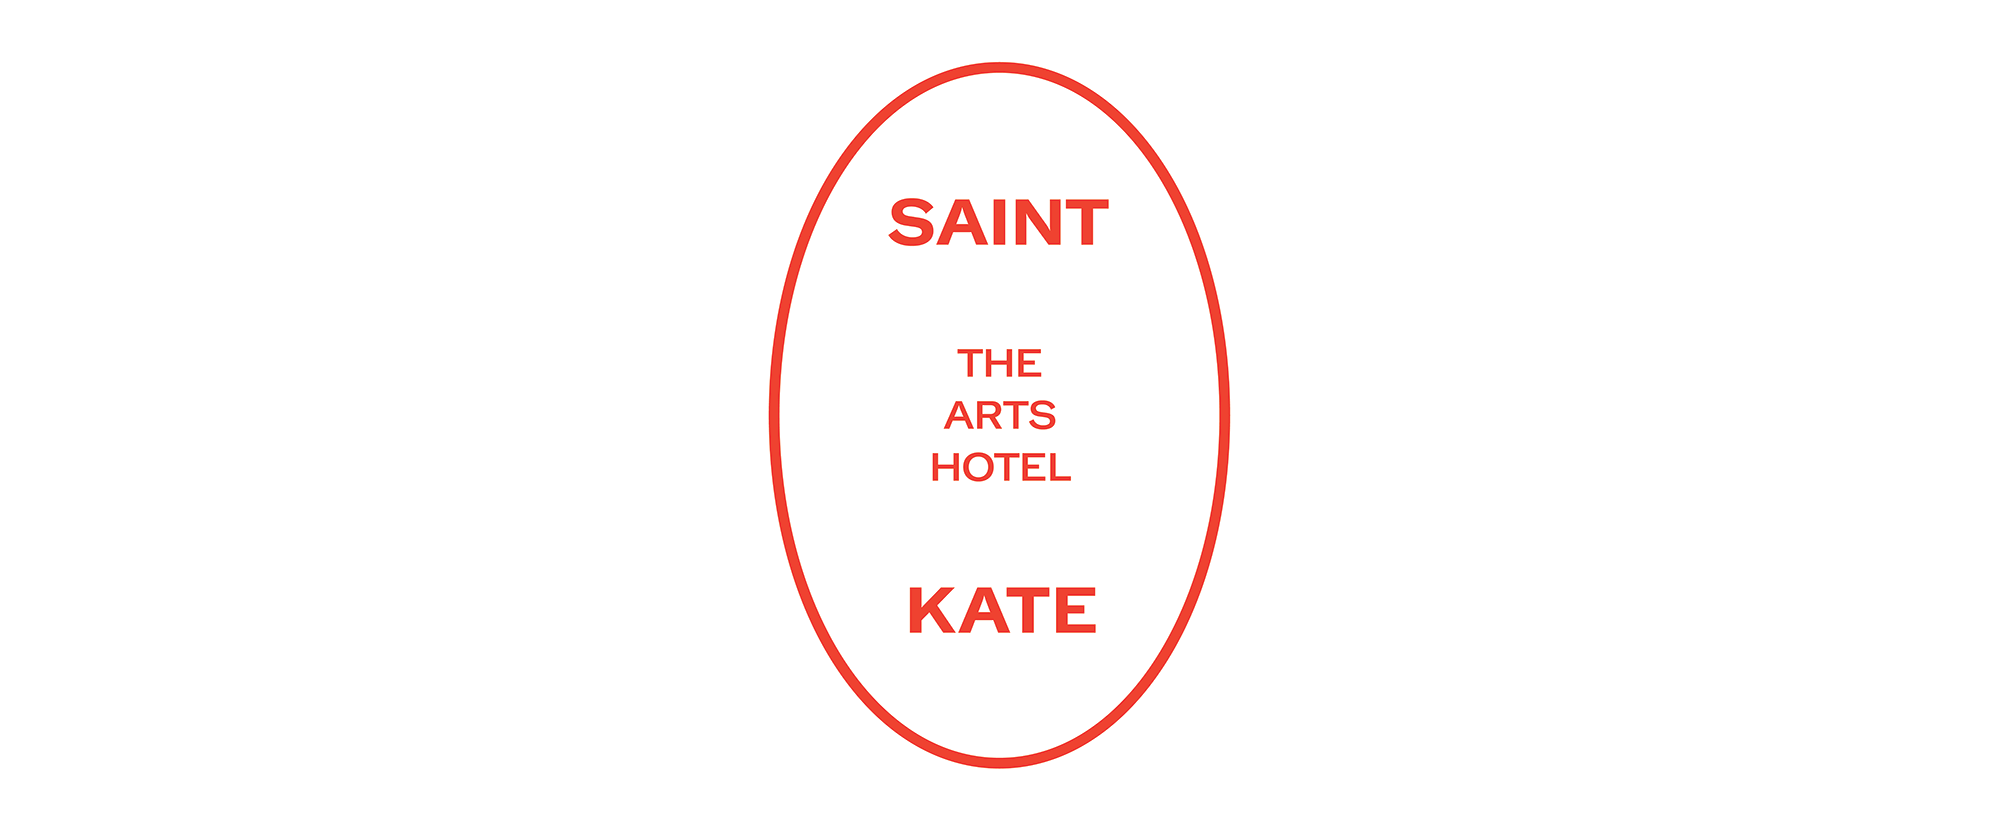 New Logo and Identity for Saint Kate Arts Hotel by One Design Company